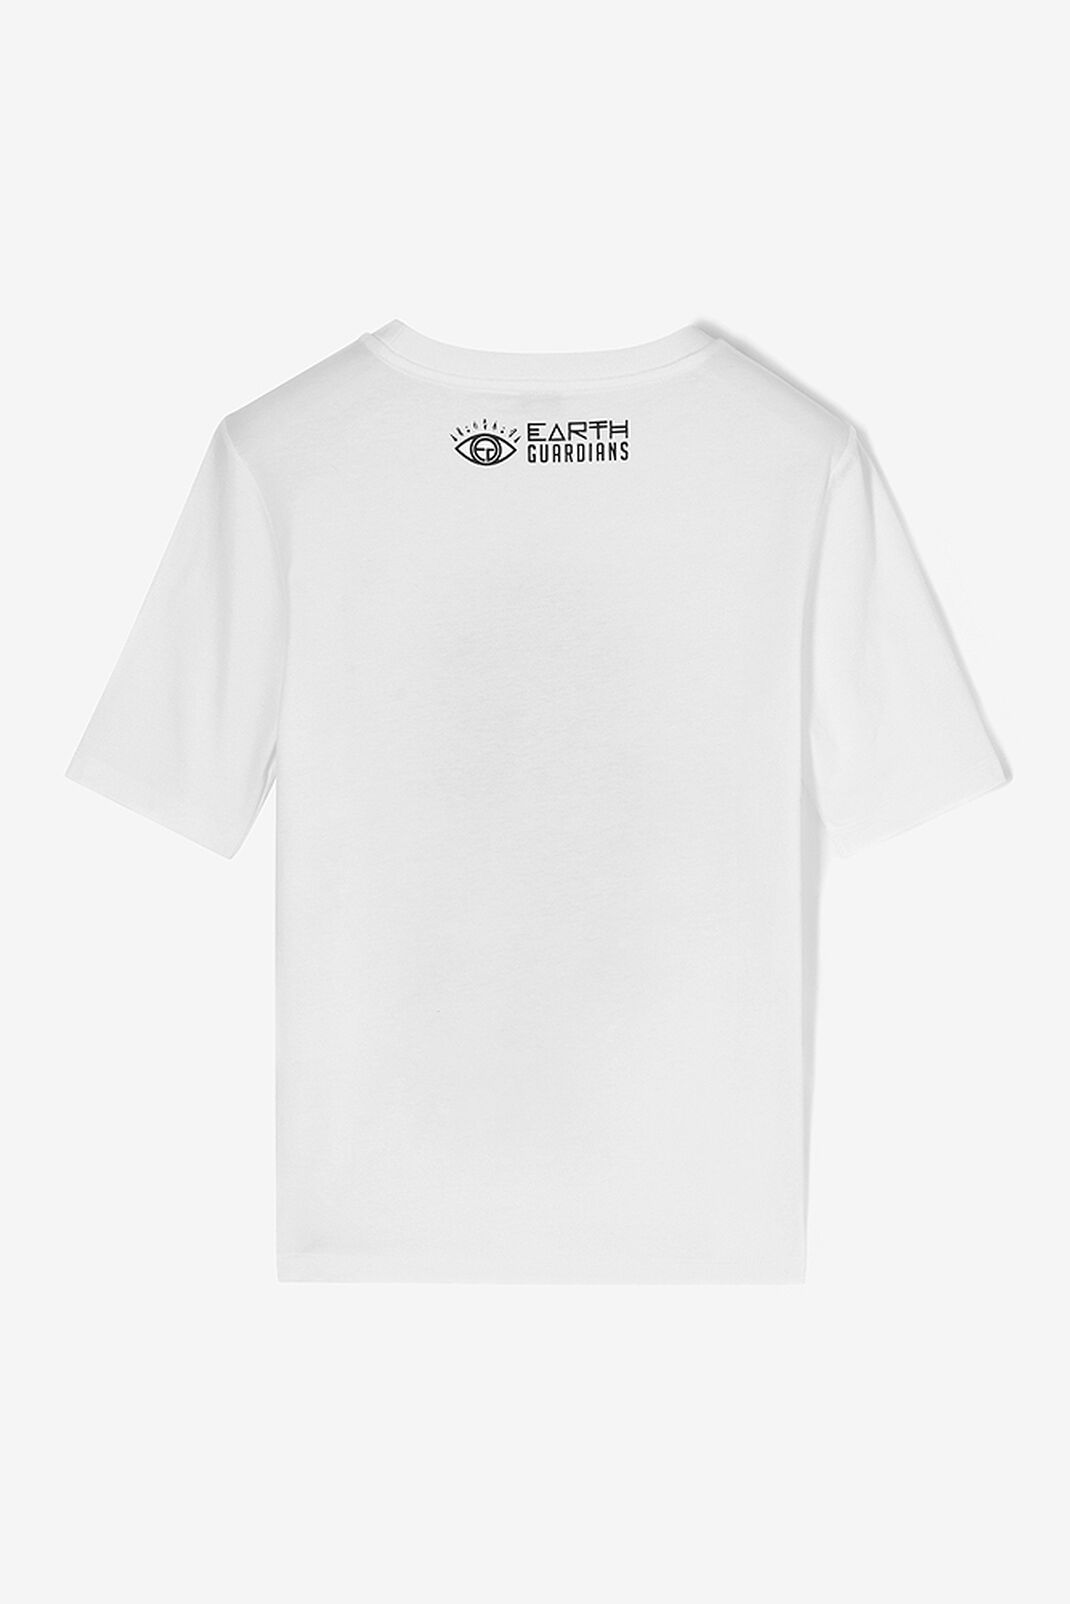 WHITE 'Earth' T-shirt for women KENZO